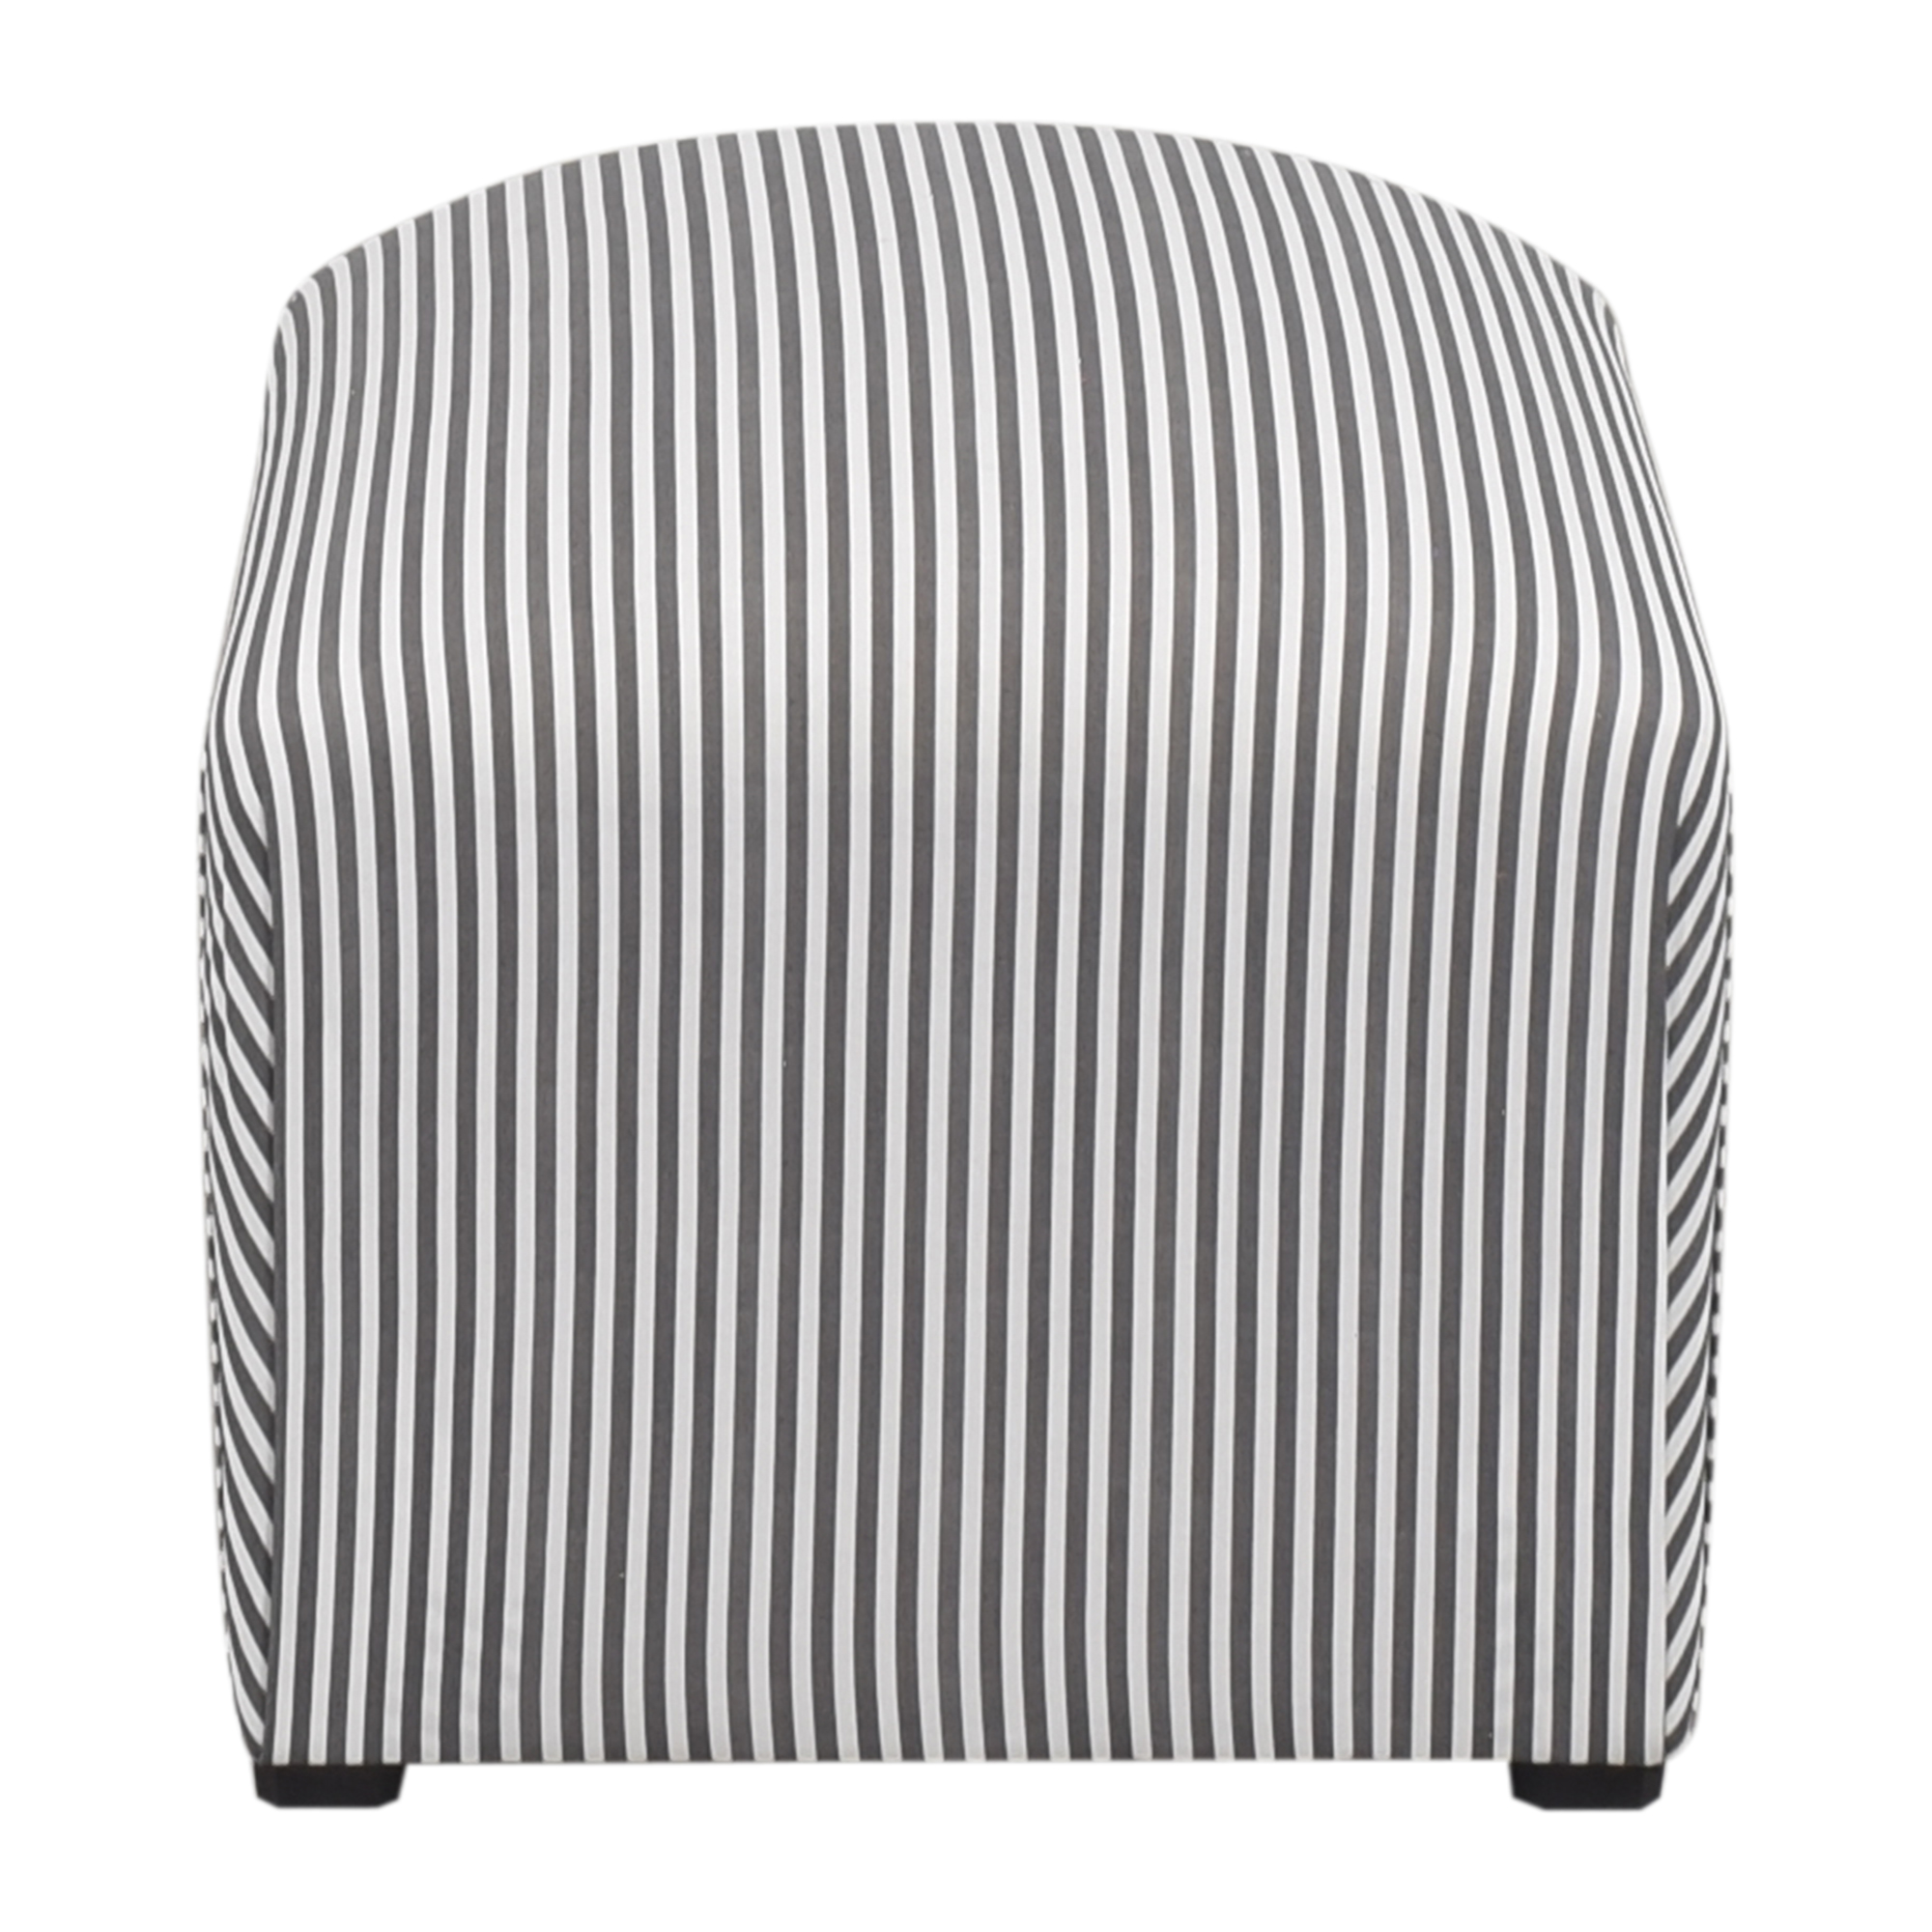 The Inside The Inside Ticking Stripe Deco Ottoman ma